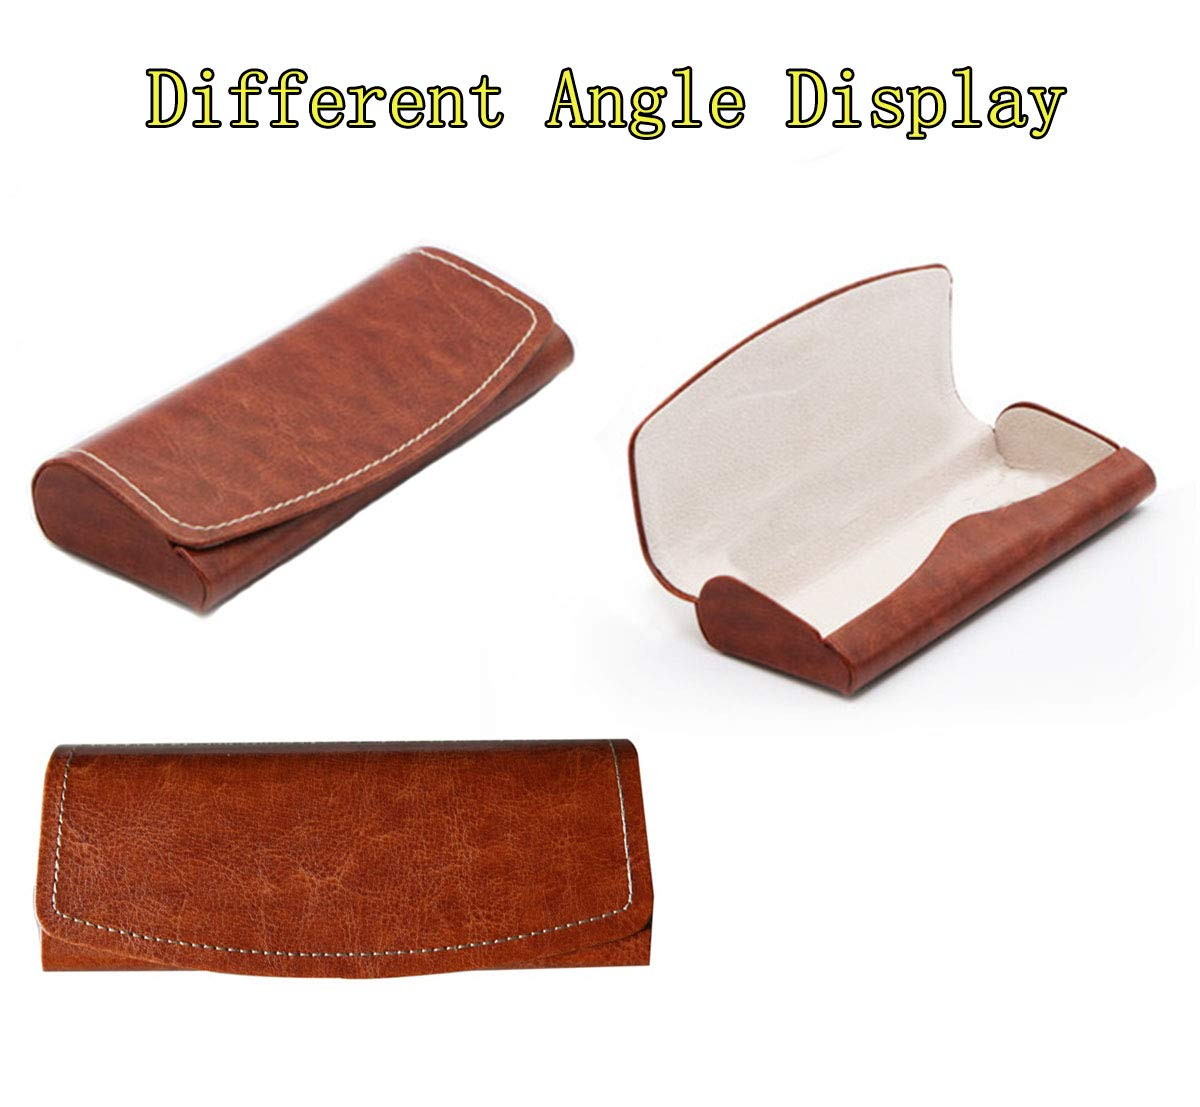 PU Leather Hard Shell Eyeglass Case Portable Sunglasses Glasses Holder Pouch (Brown) by Bauson (Image #4)